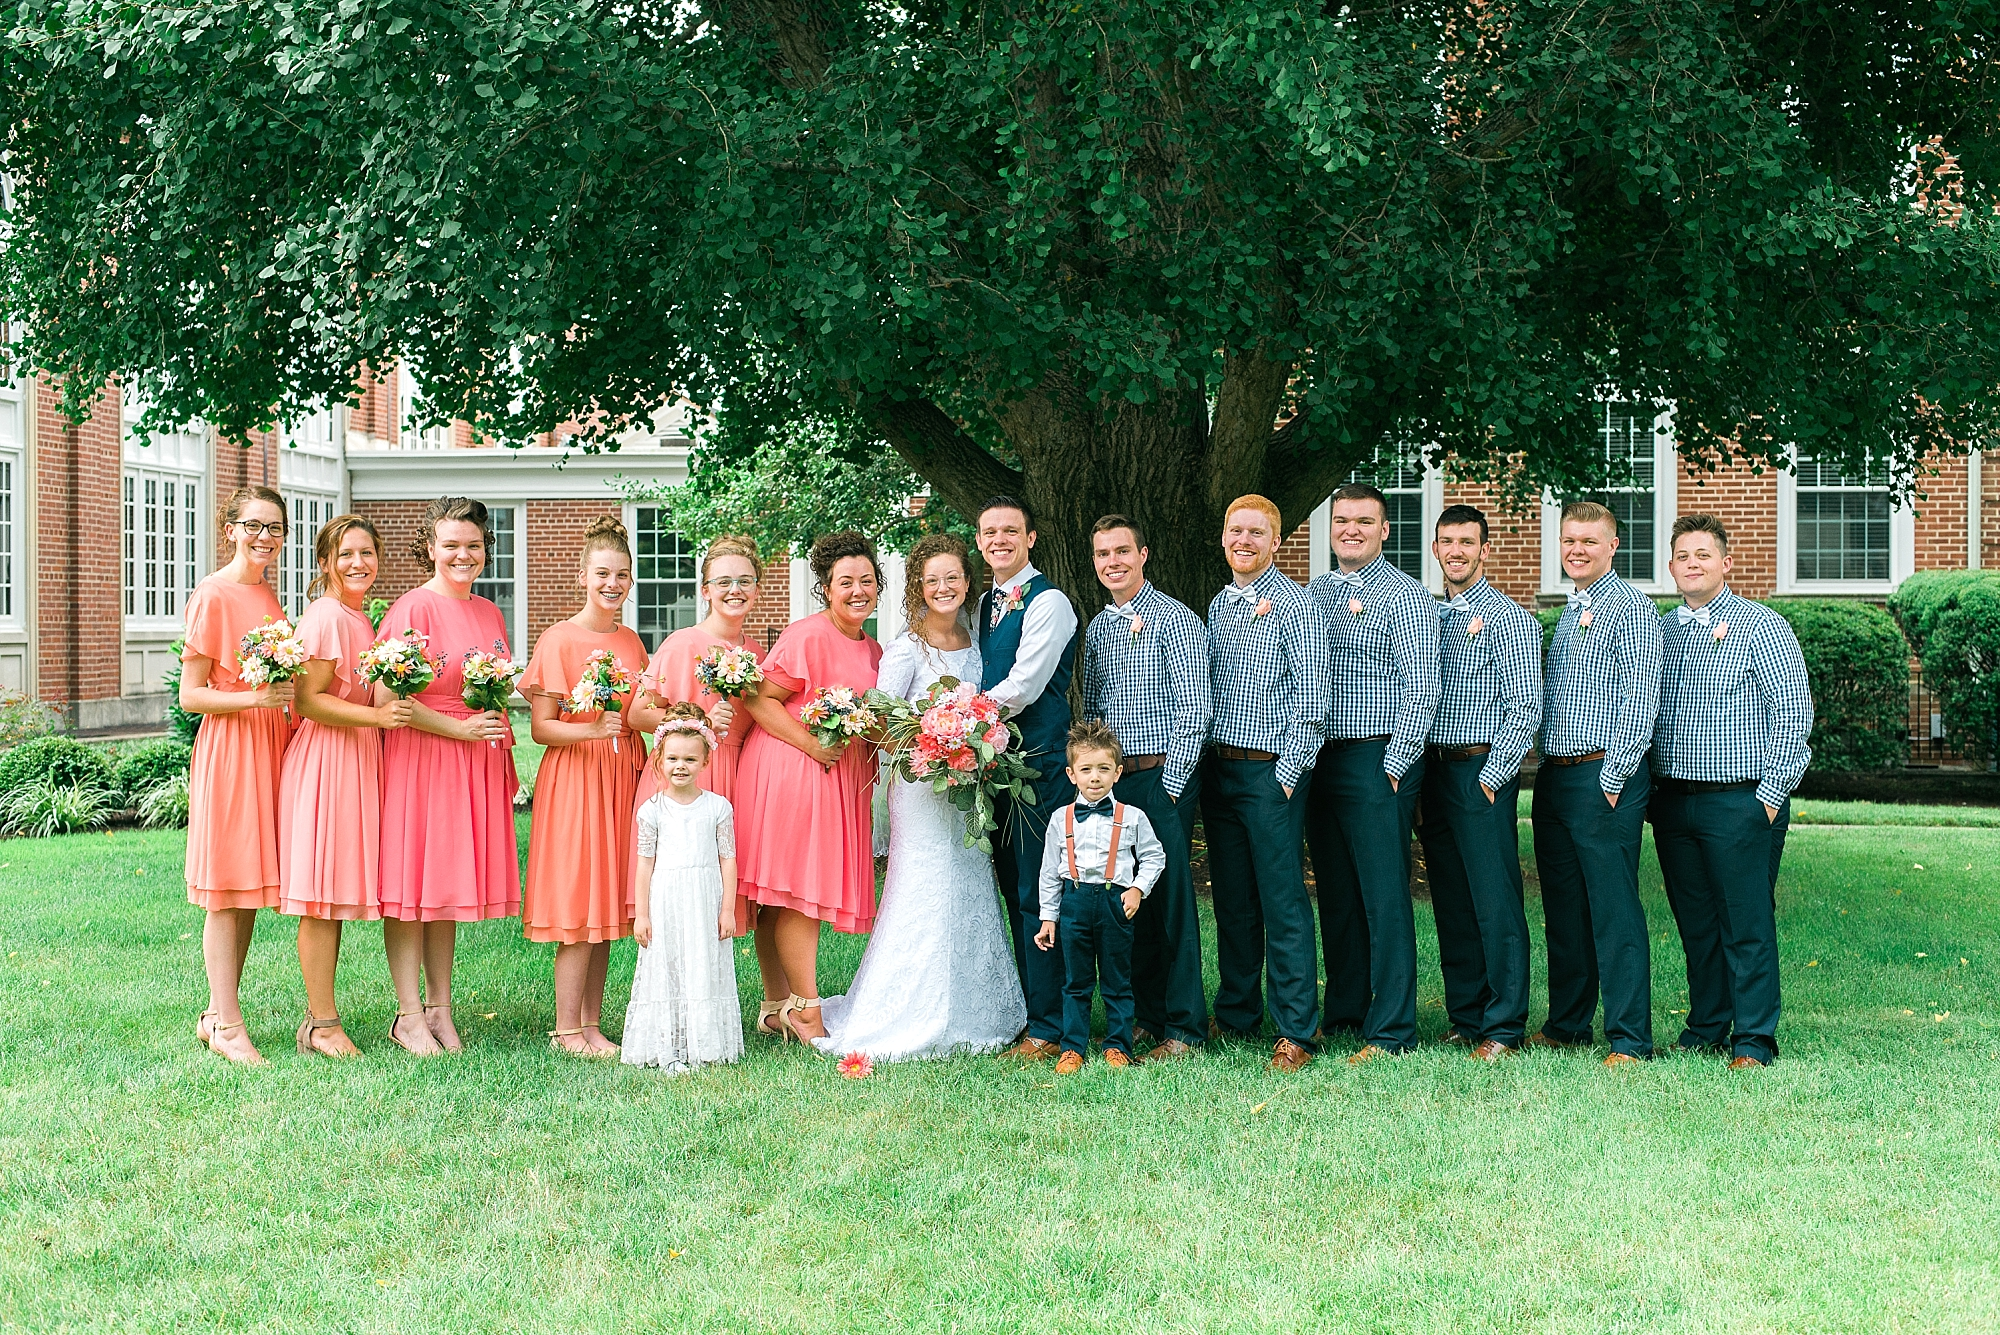 Good looking group!